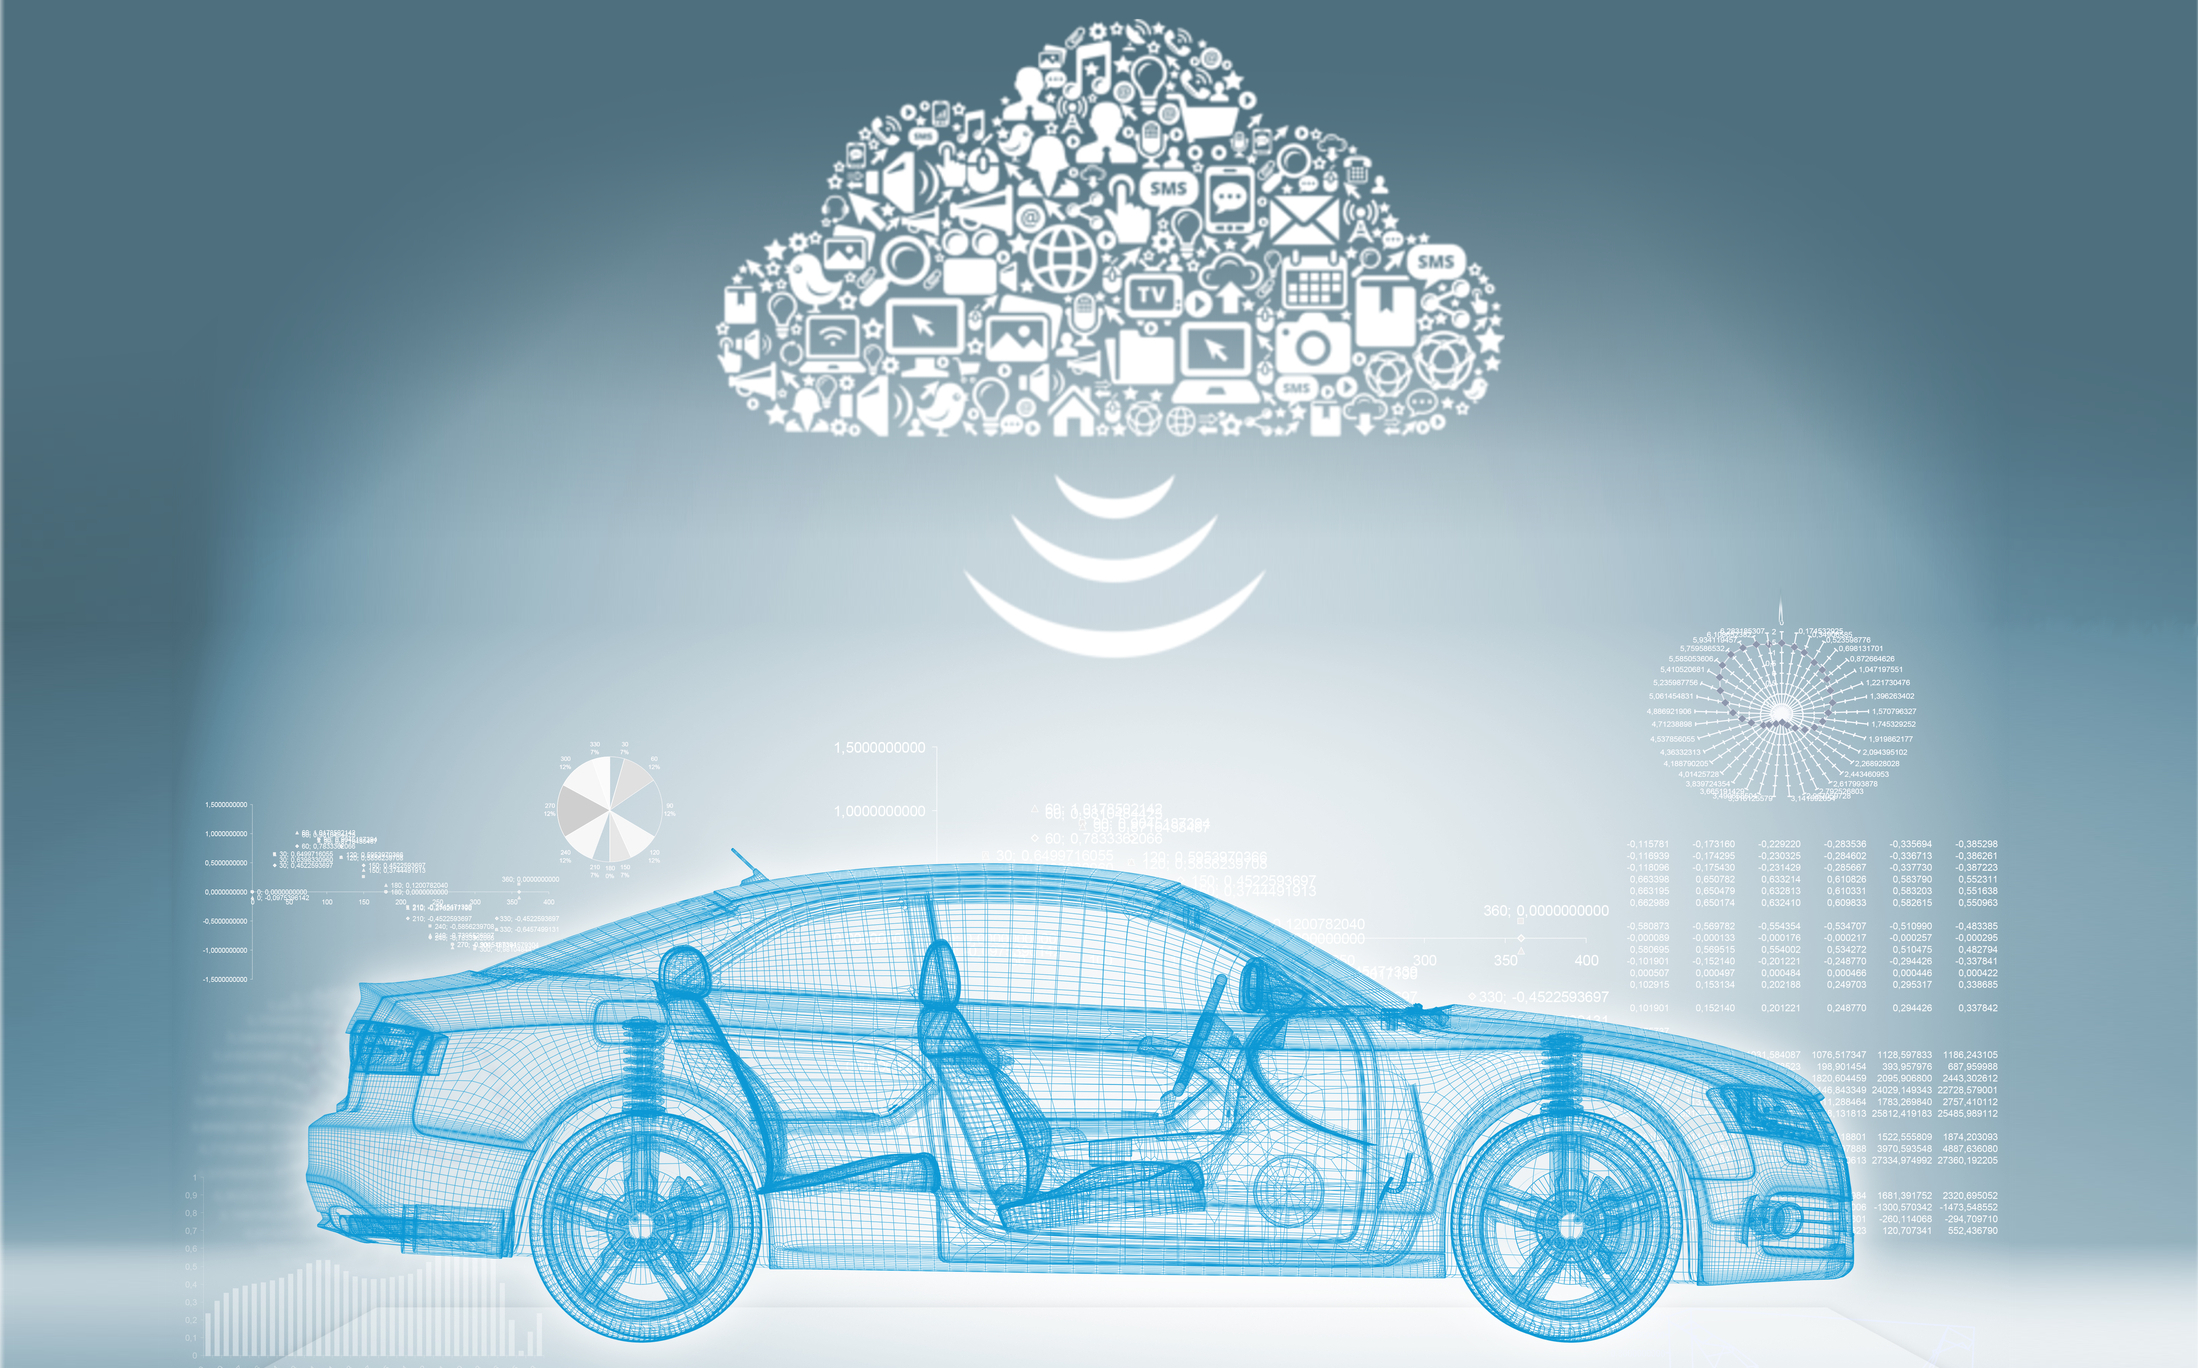 Airbiquity Renews 2013 Agreement With Nissan Performing